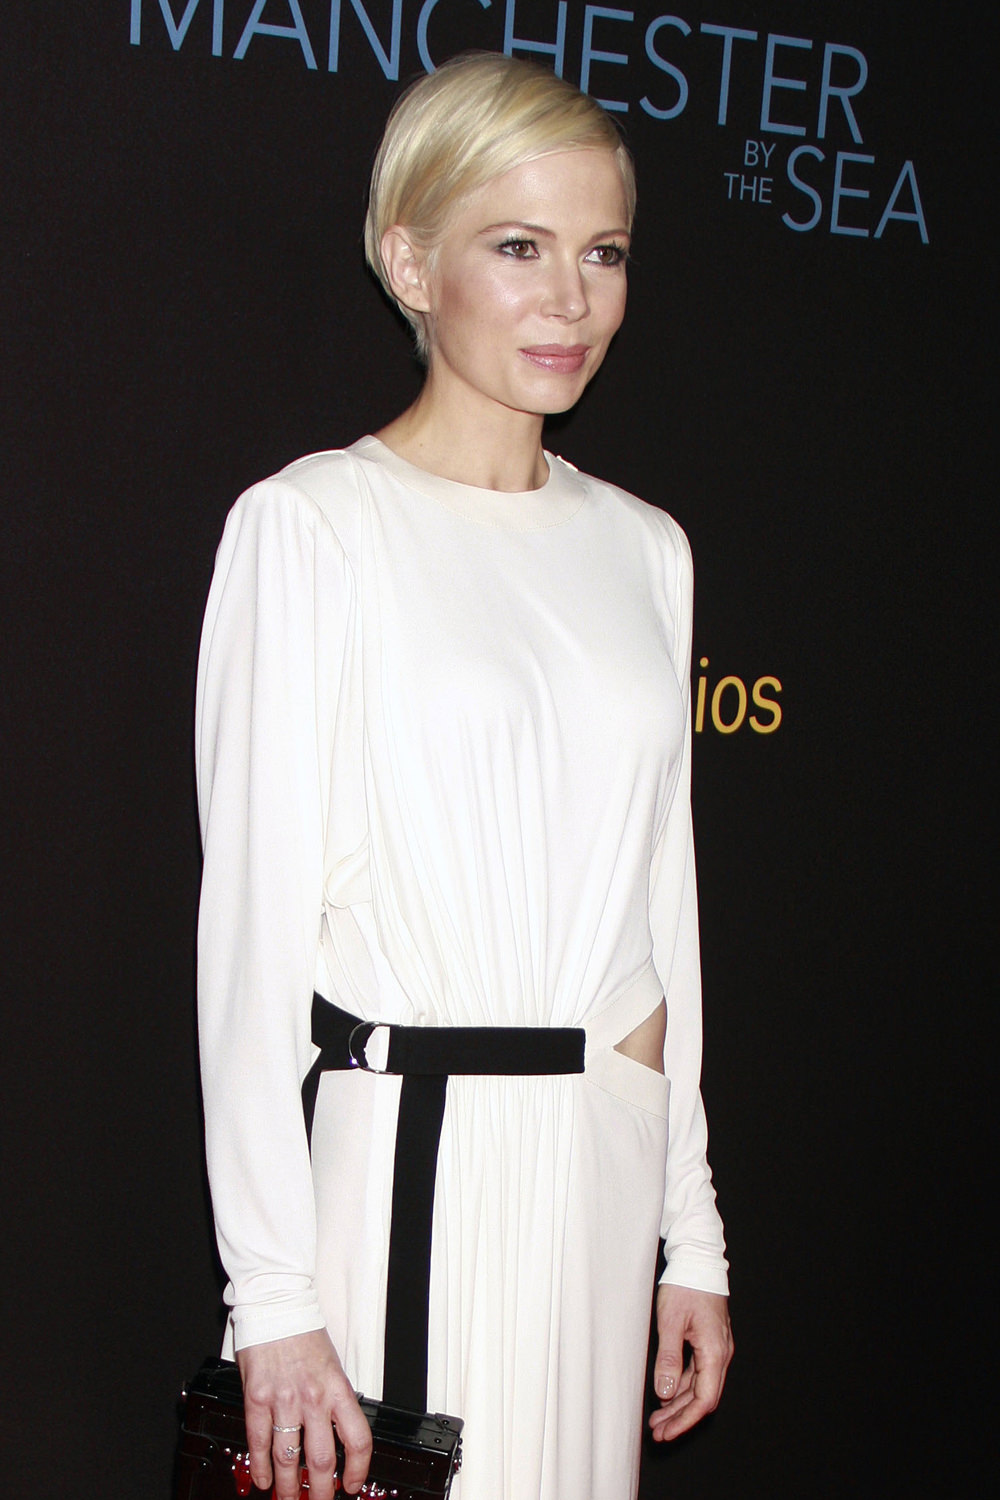 michelle-williams-manchester-by-the-sea-movie-premiere-red-carpet-fashion-louis-vuitton-tom-lorenzo-site-2